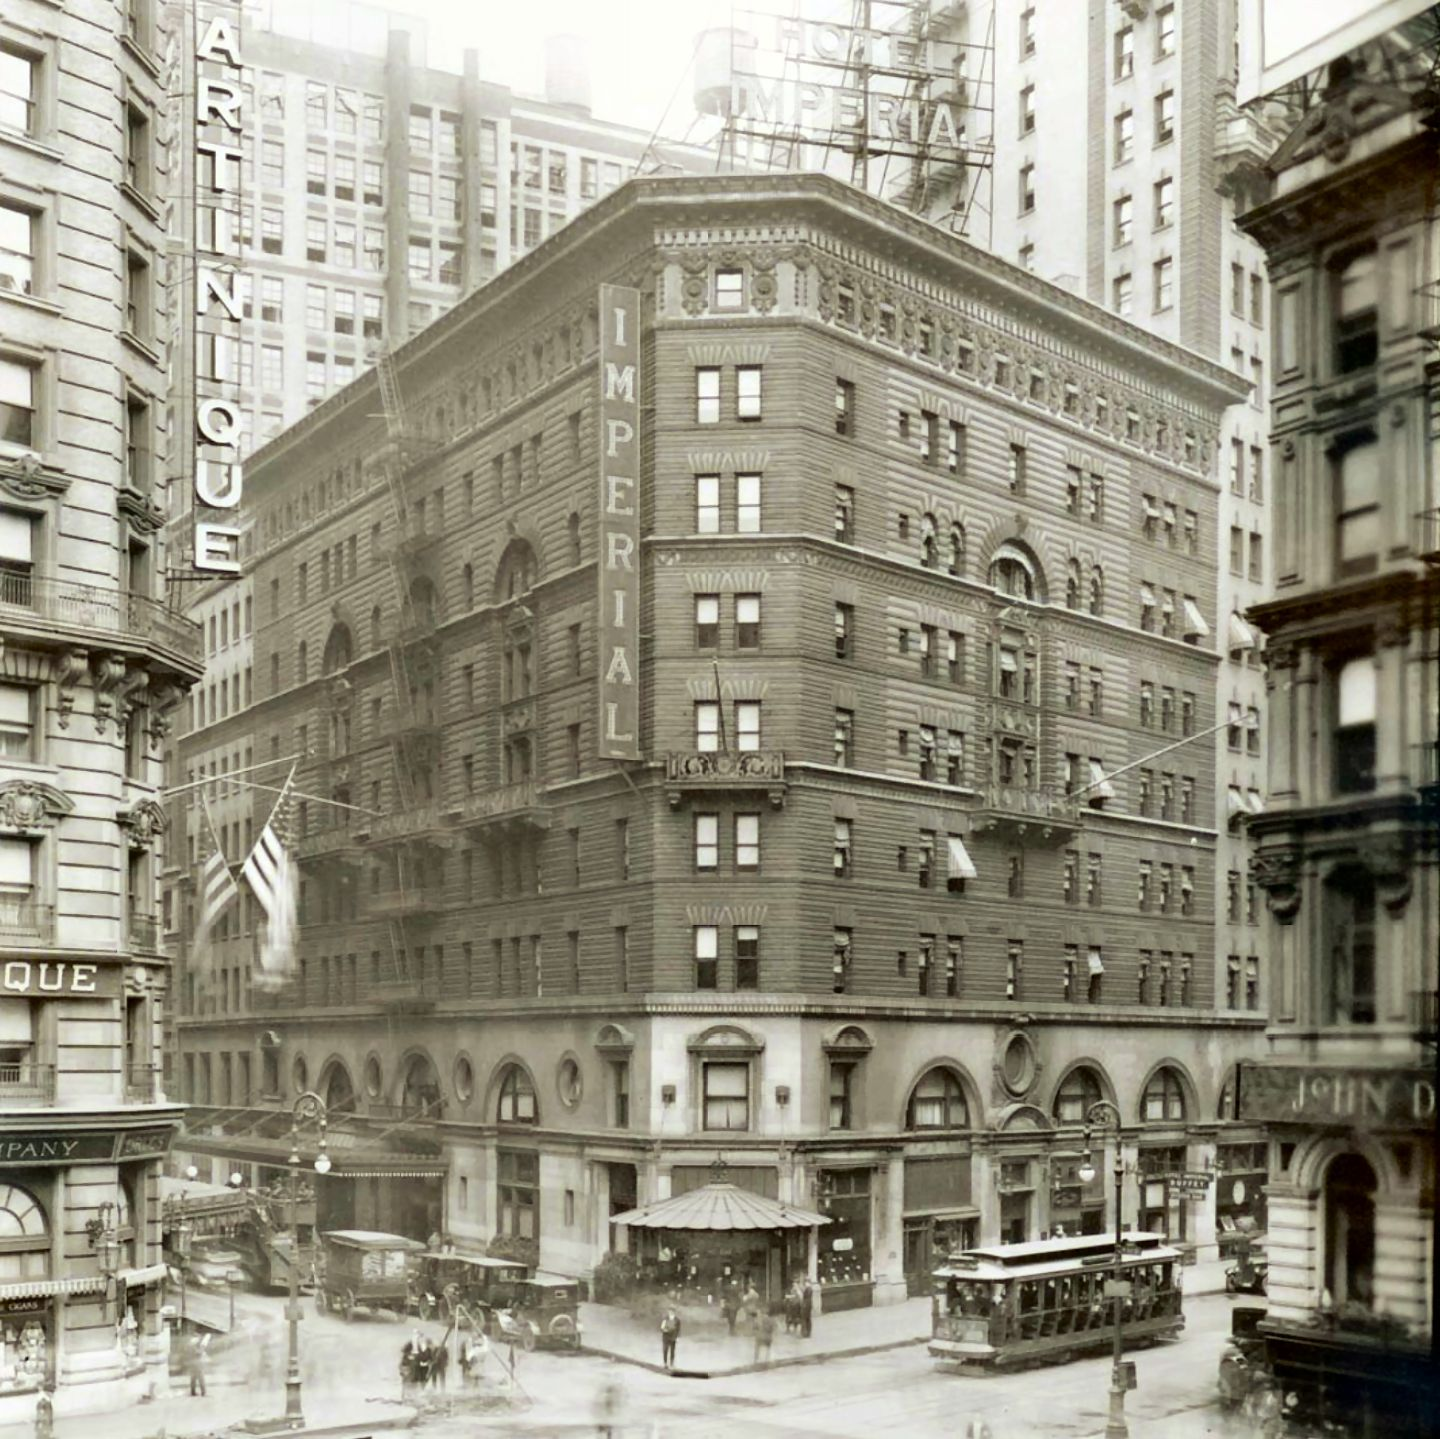 Hotel Imperial Broadway At 32nd Street New York City 1921 New York City Buildings New York City Manhattan Vintage New York